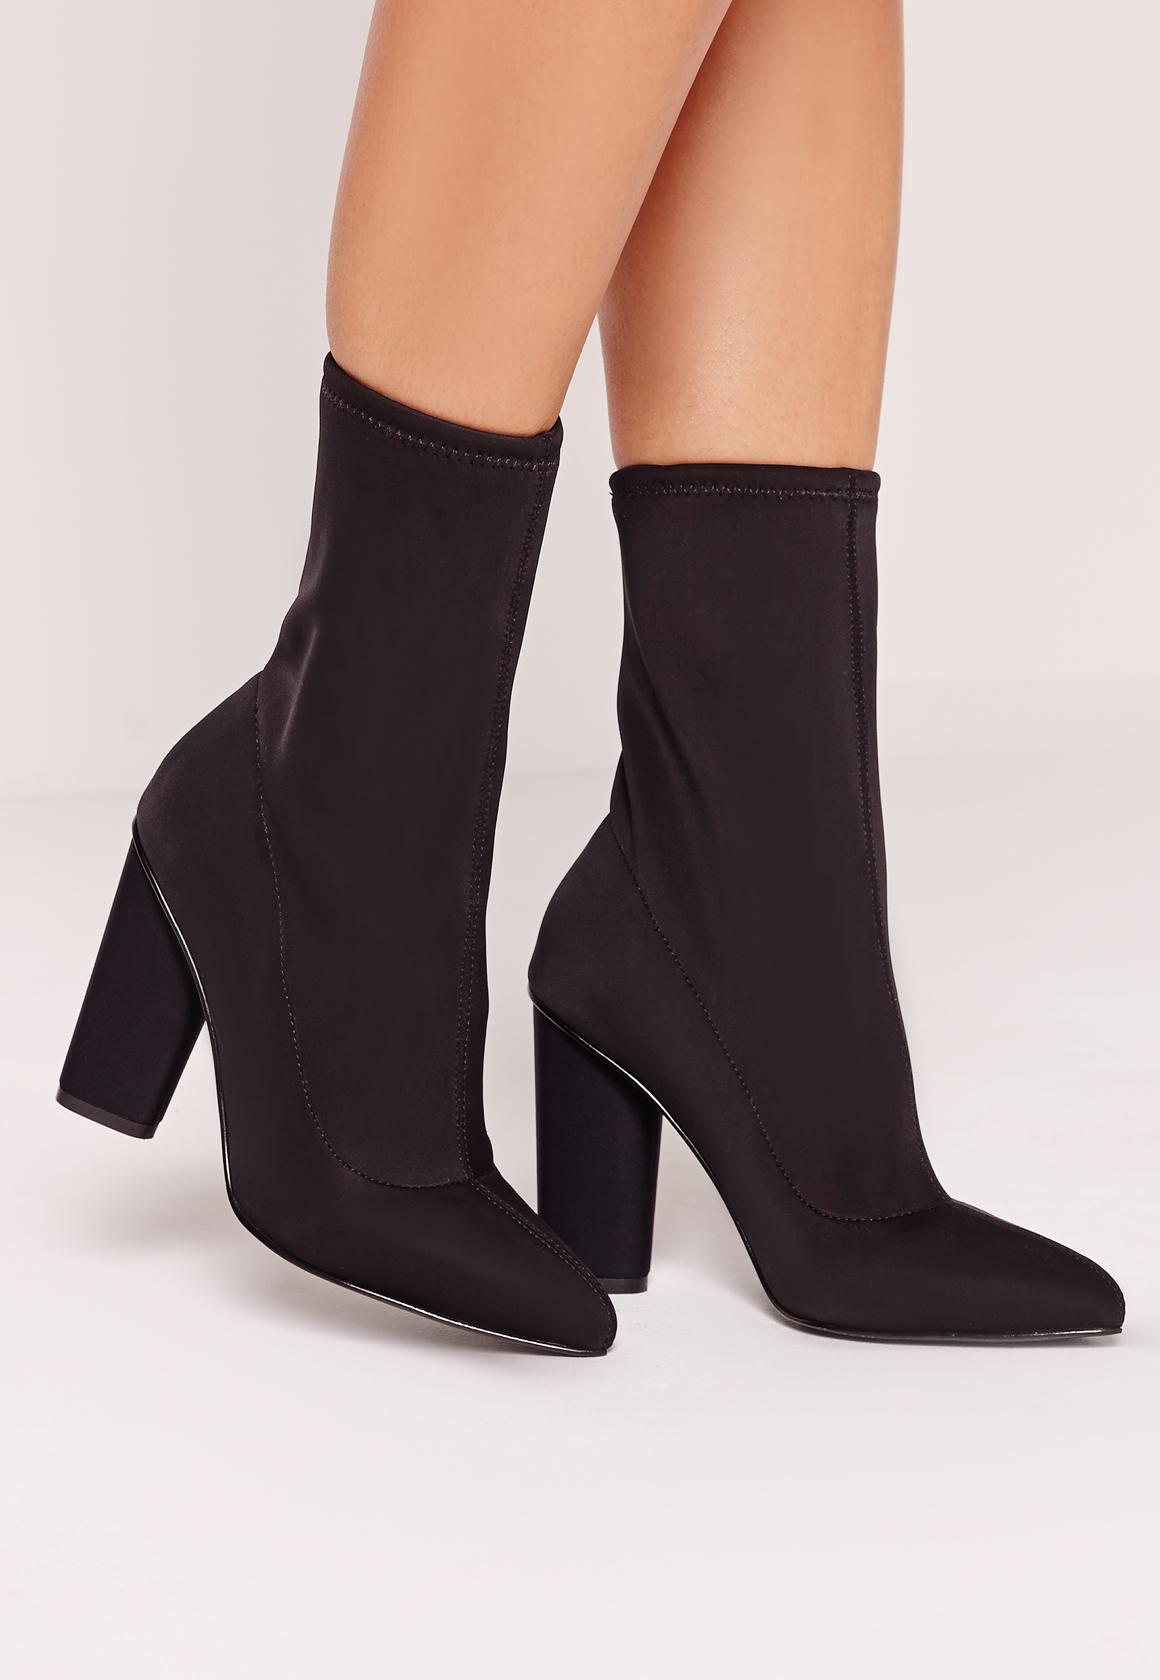 Pointed Toe Neoprene Heeled Ankle Boots Black - Missguided